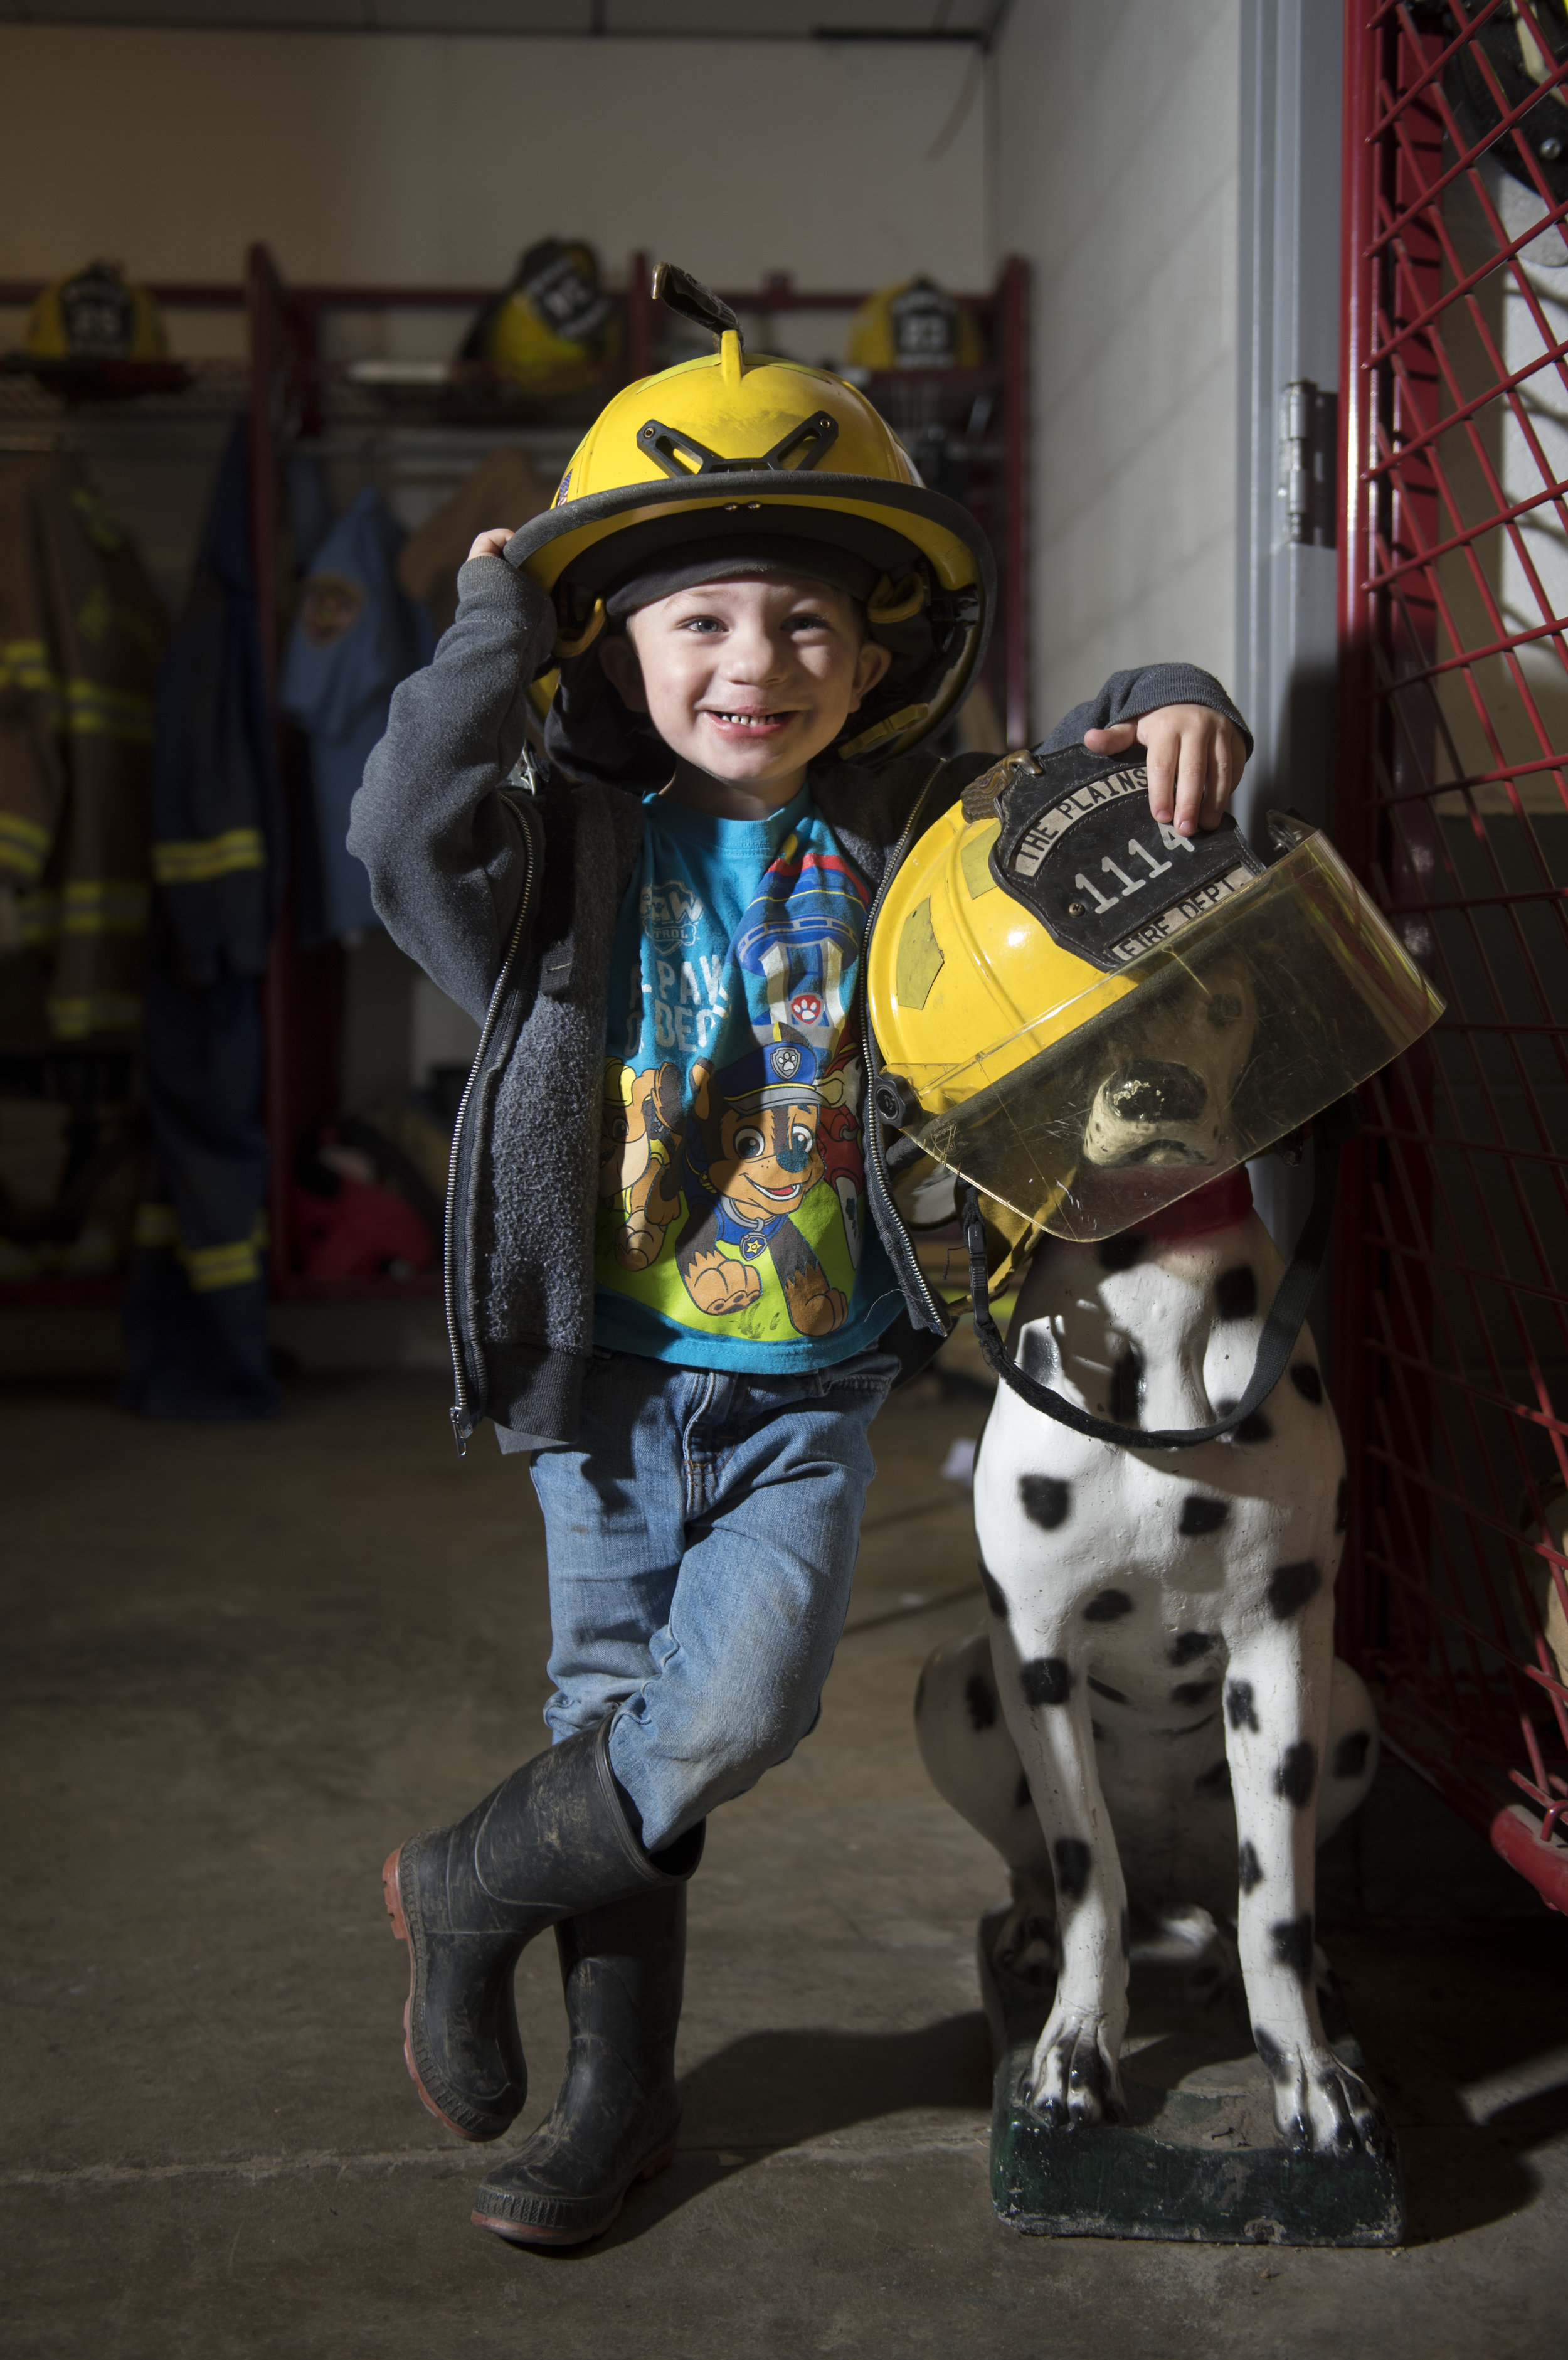 Mason Cottrill poses for his portrait inside The Plains Volunteer Fire Department on Nov. 13, 2018 in The Plains, Ohio. Cottrill's father is one of the firefighters.